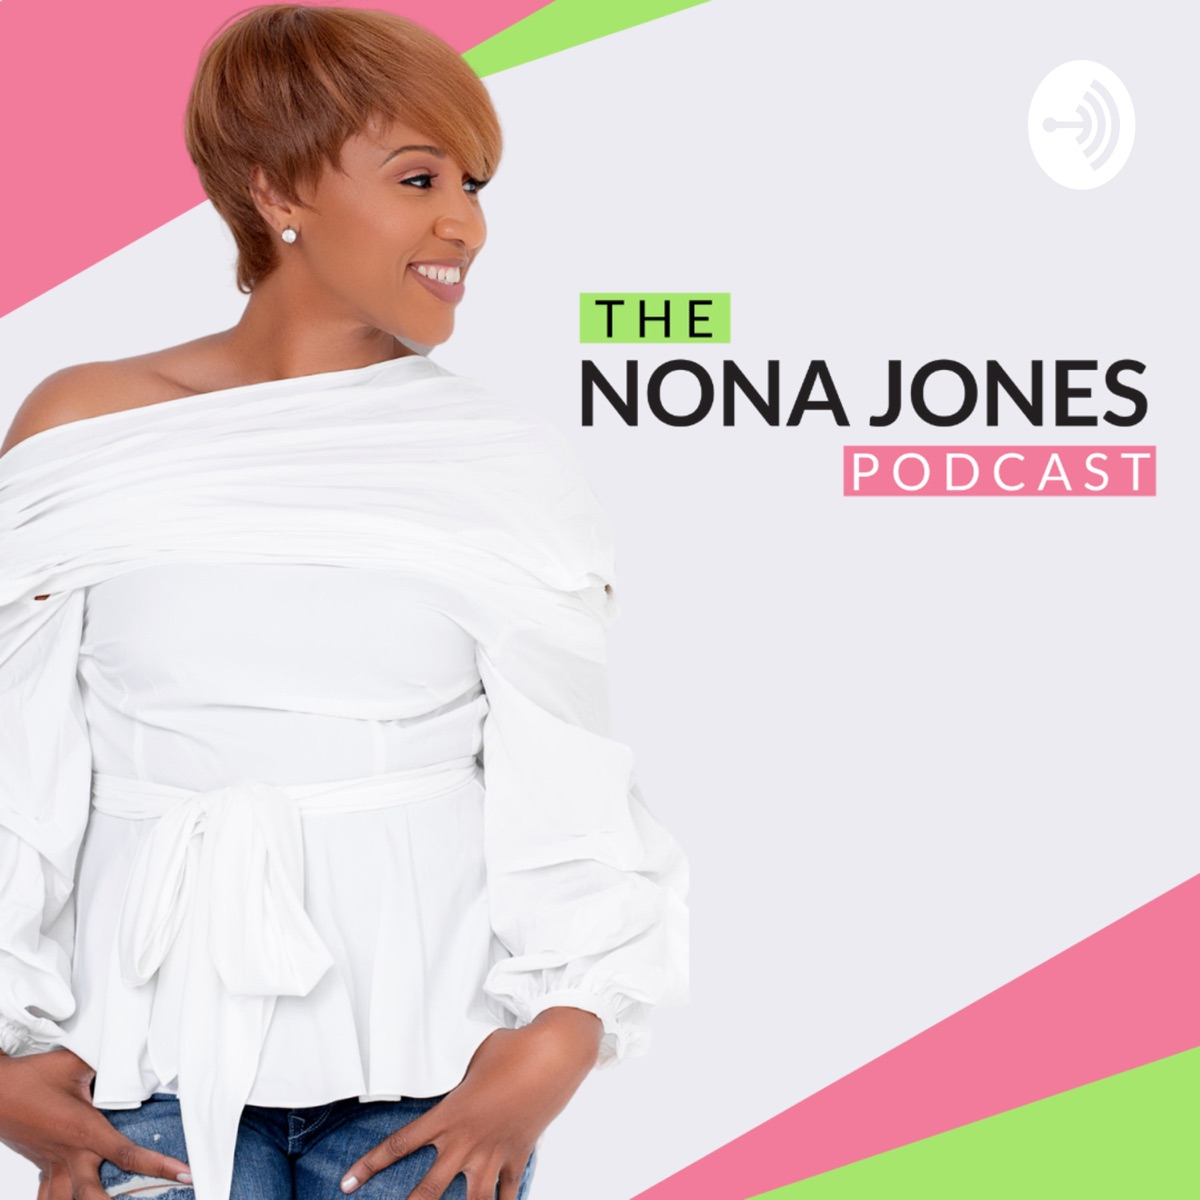 The Nona Jones Podcast – Podcast – Podtail